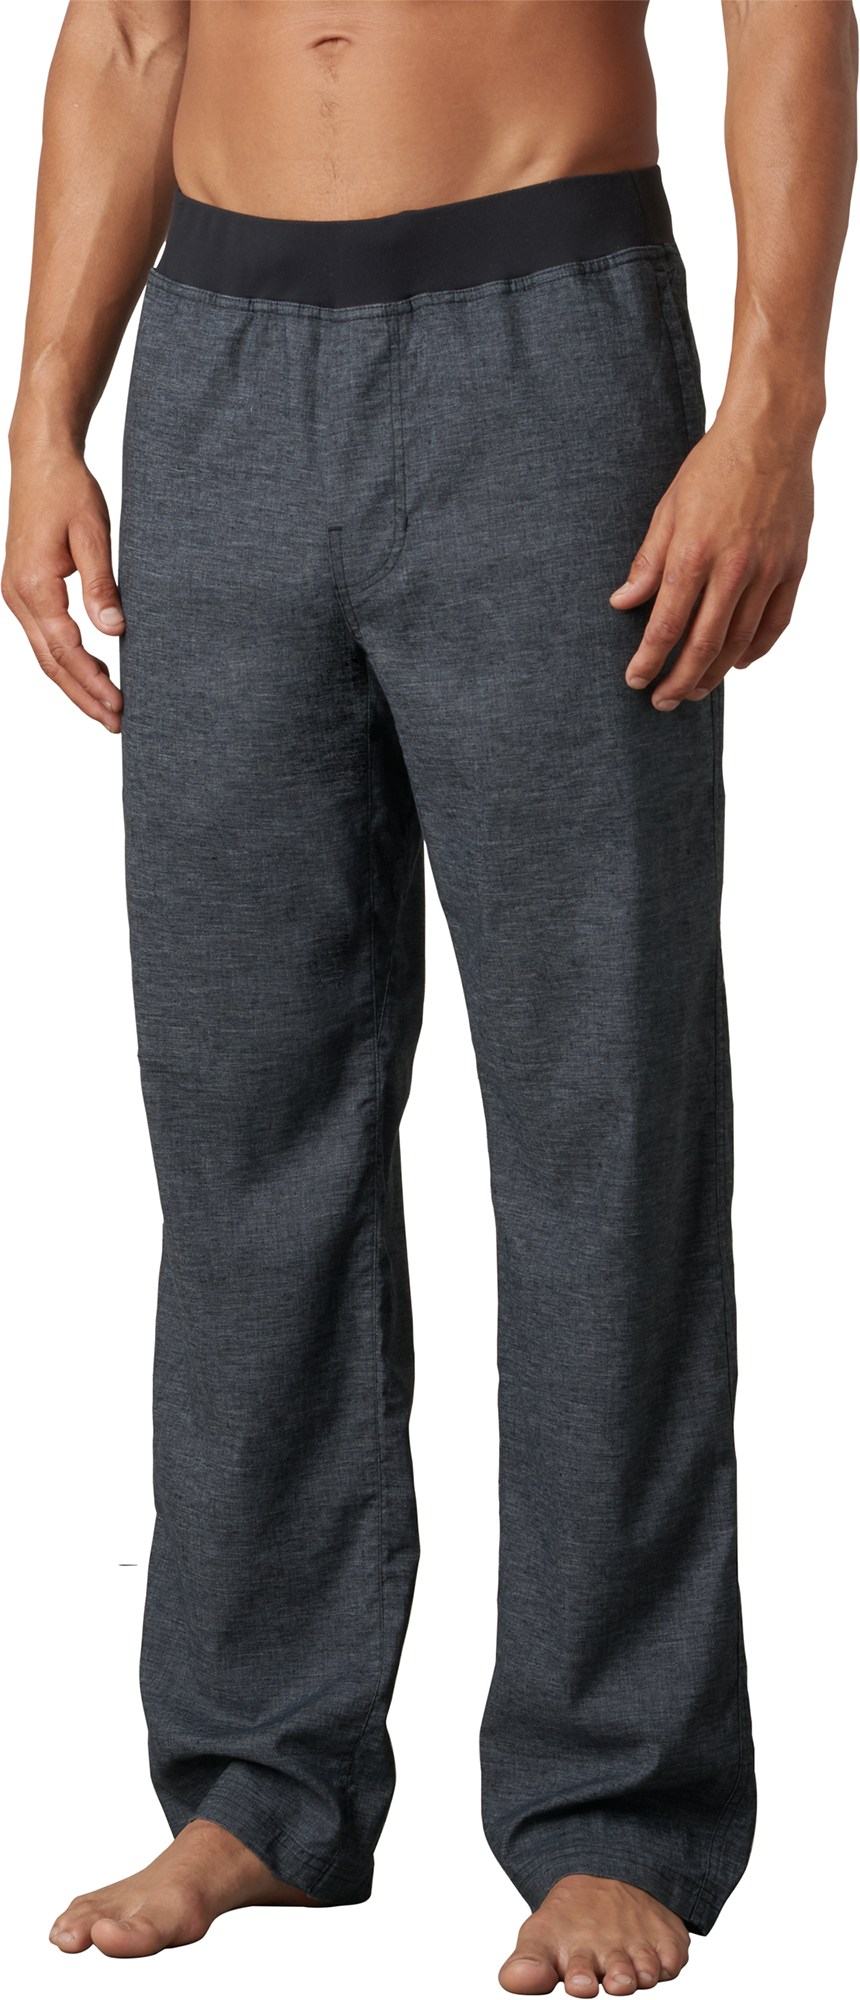 prAna Vaha Pants - Men's 32